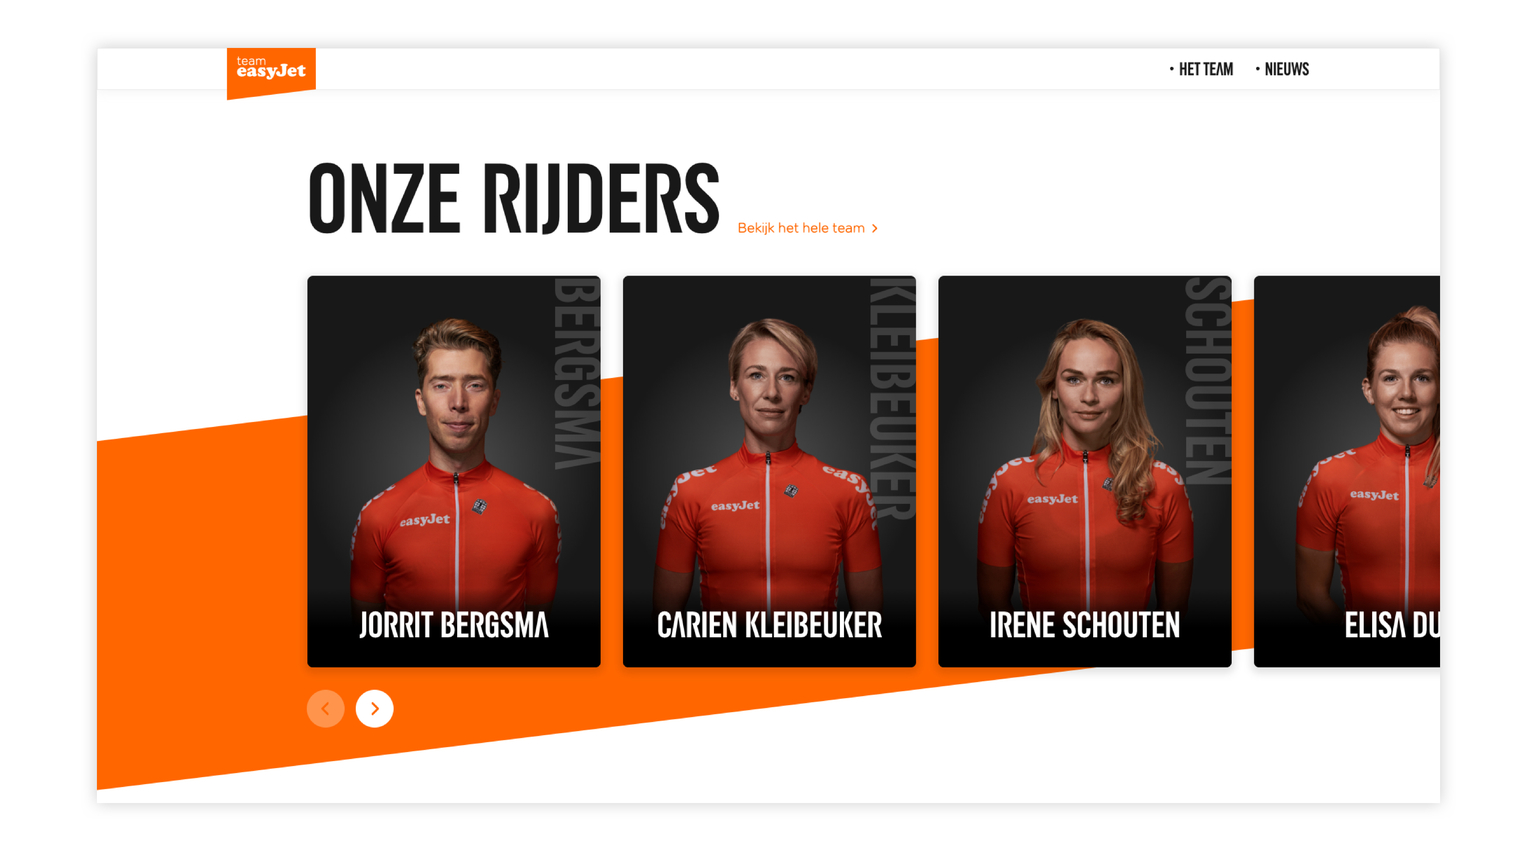 Case visual easyJet website rijders